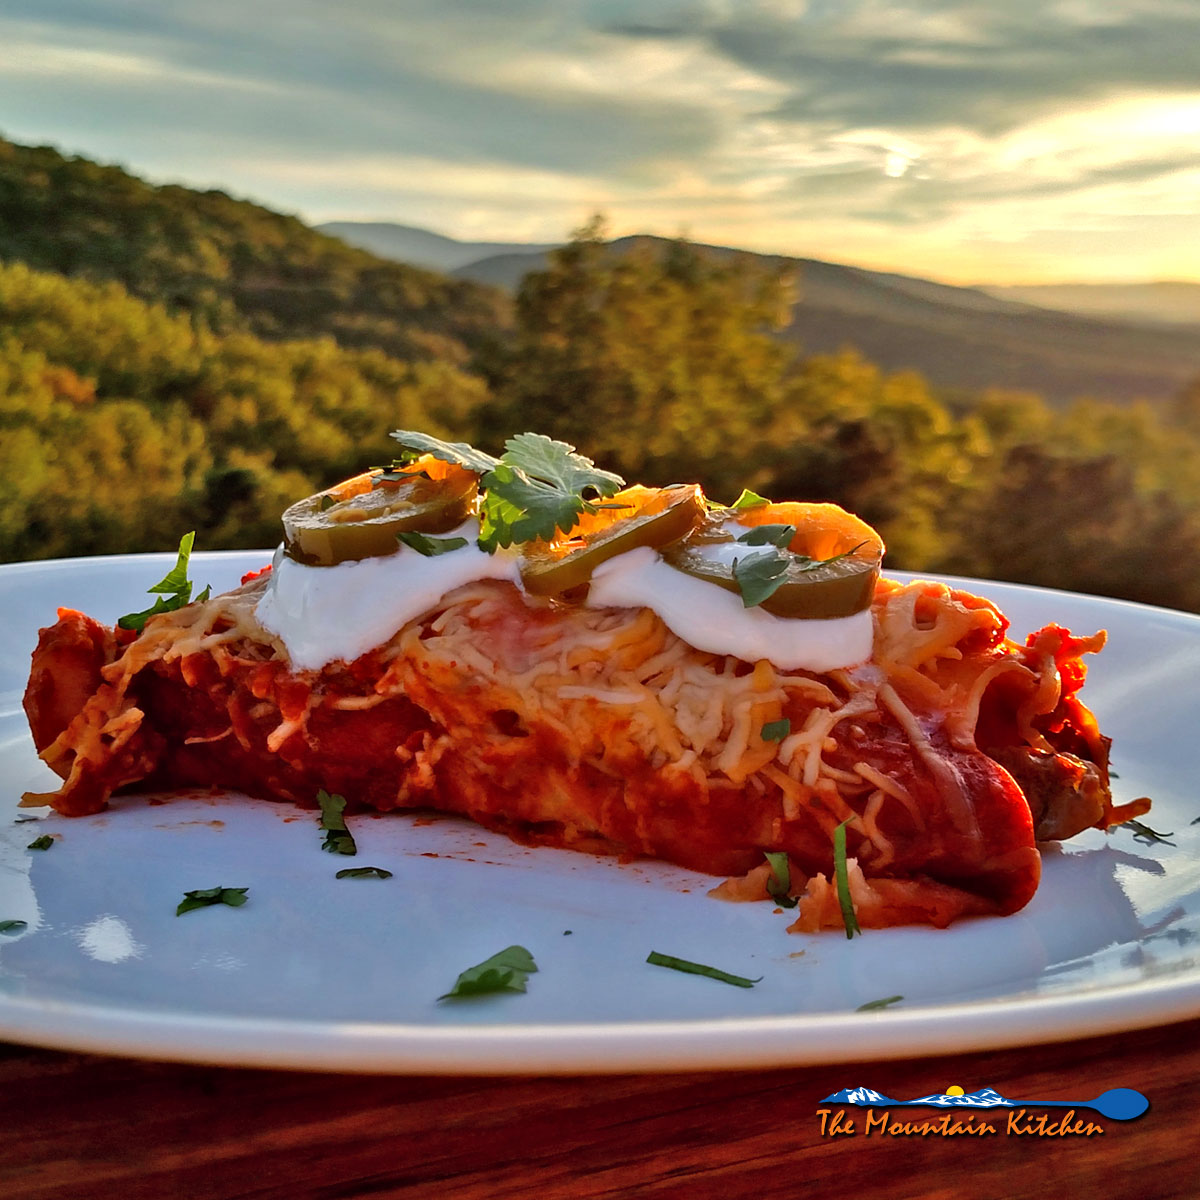 Steak and Refried Bean Enchiladas: rolled flour tortillas filled with refried beans, and steak topped with enchilada sauce and cheese.